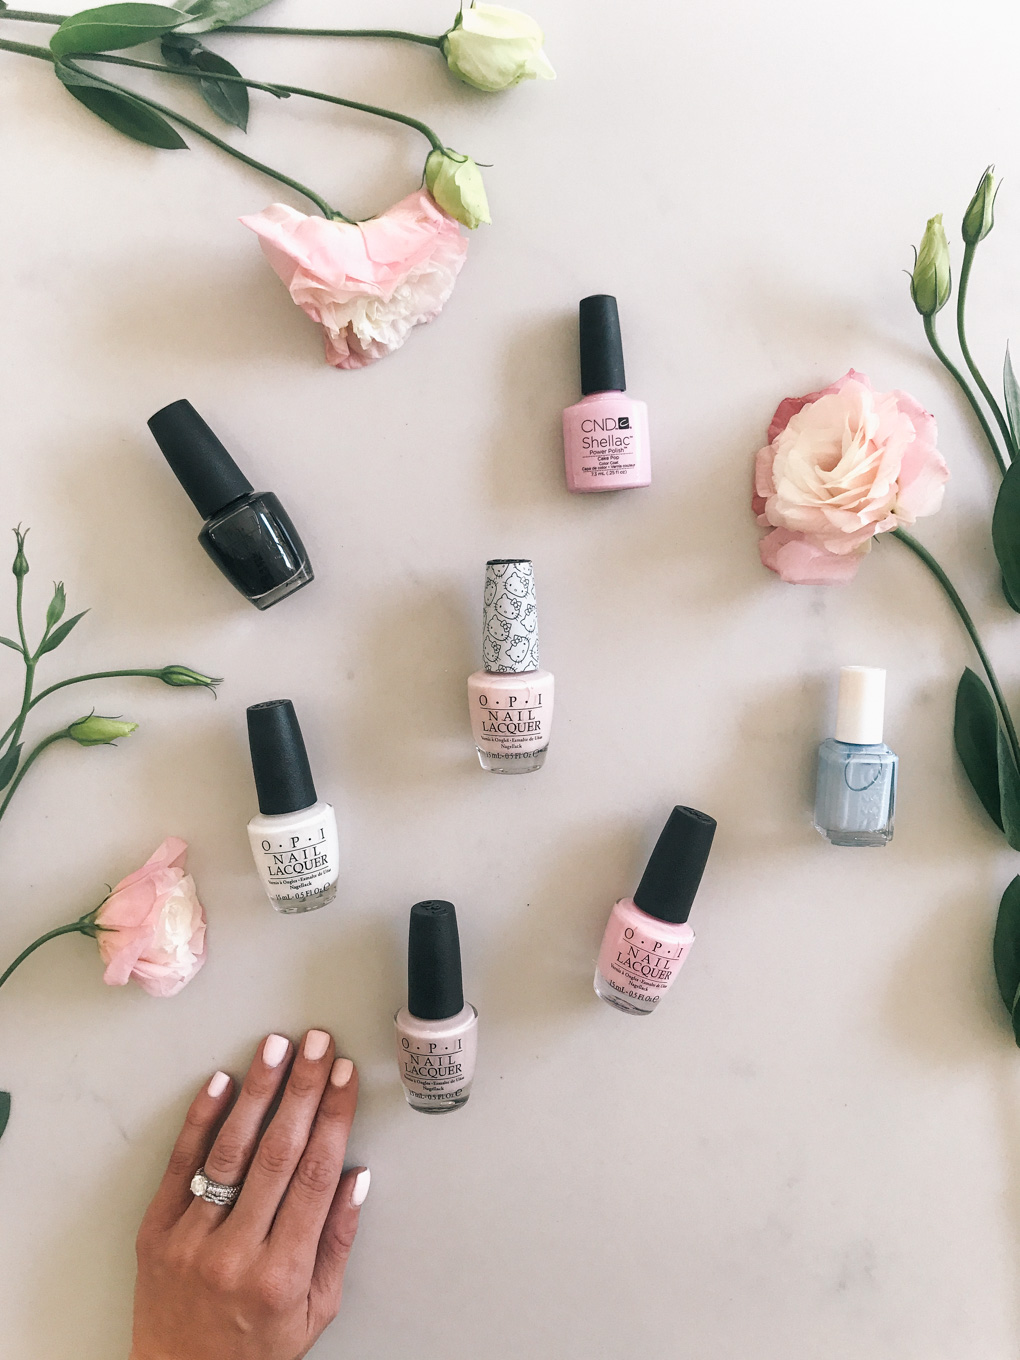 Daryl-Ann Denner shares her favorite opi essie and nail polish colors